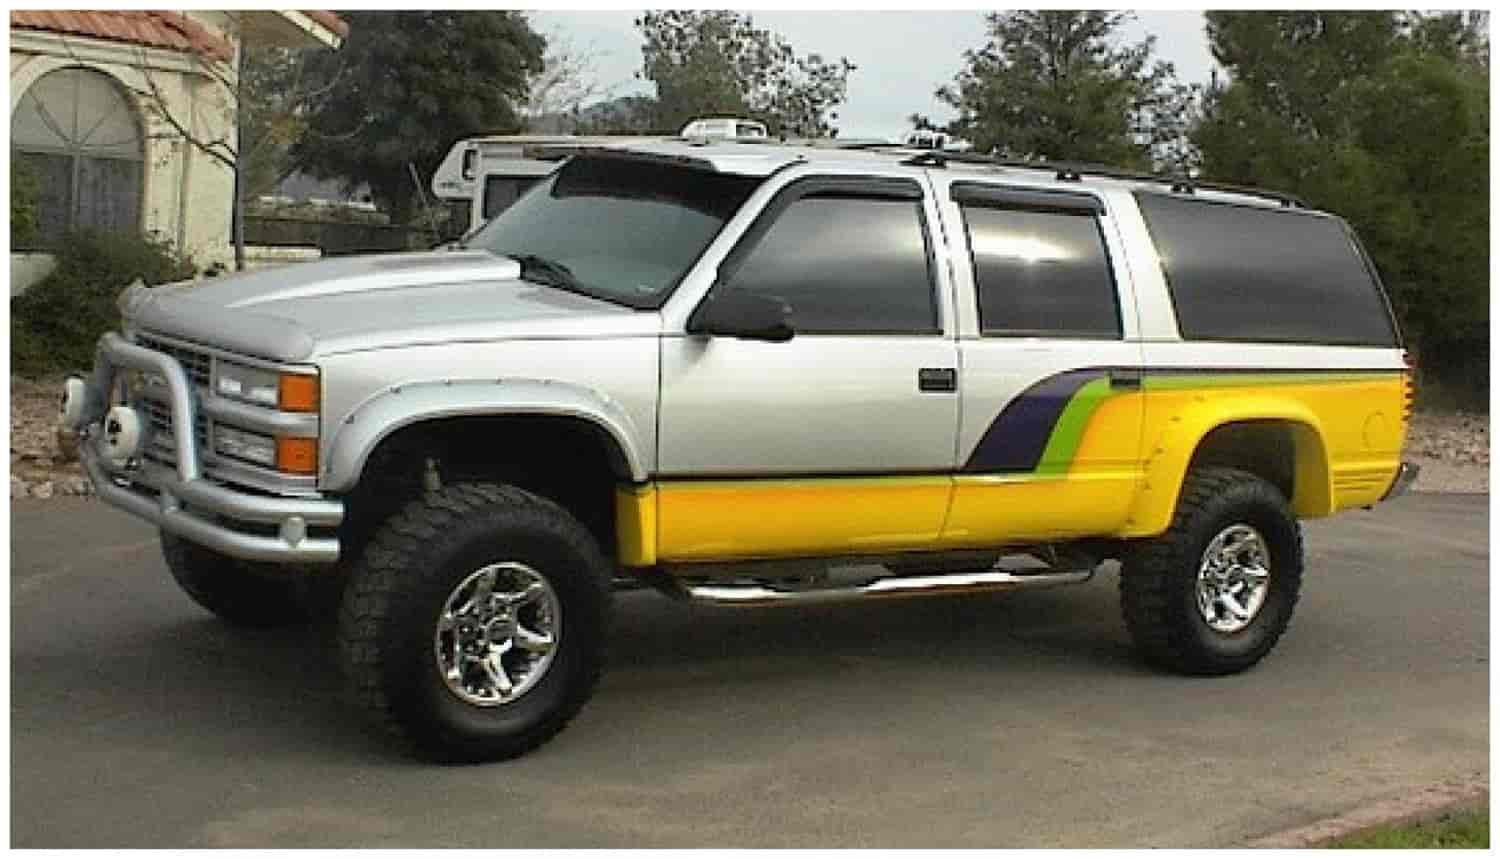 Bushwacker Body Gear 40947-02 - Bushwacker Cut-Out Fender Flares